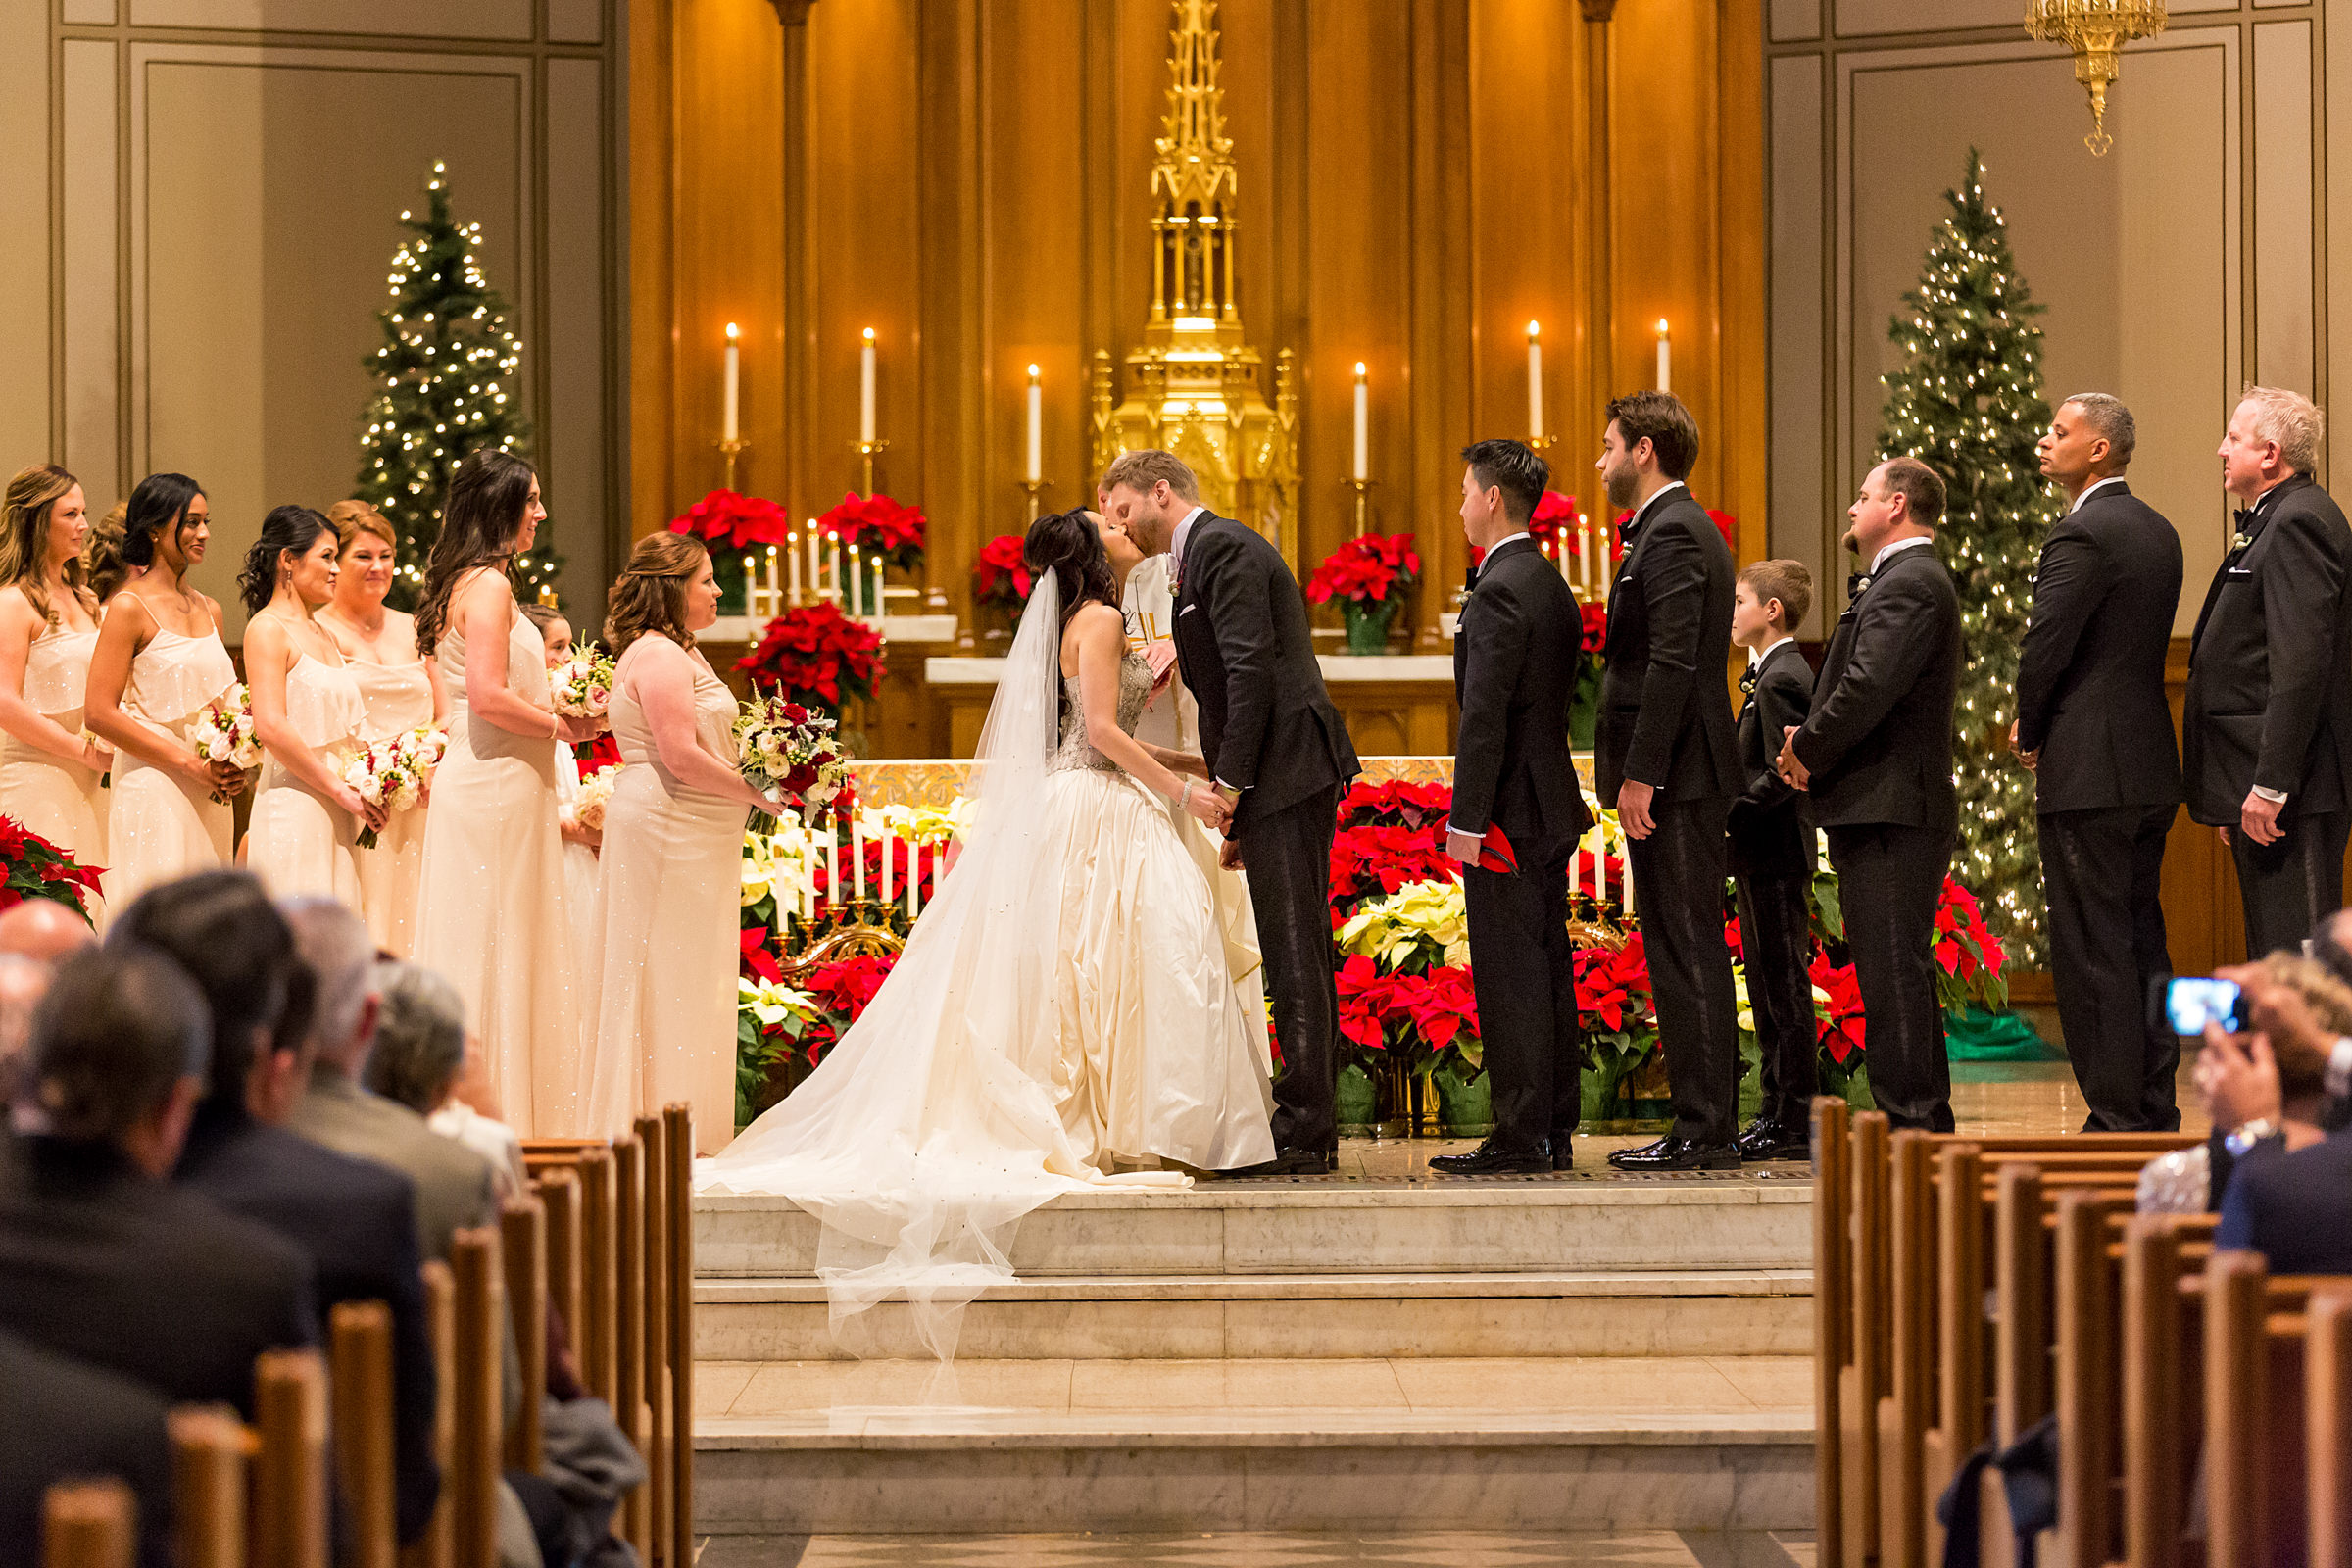 Ceremonial kiss at altar - photo by Procopio Photography